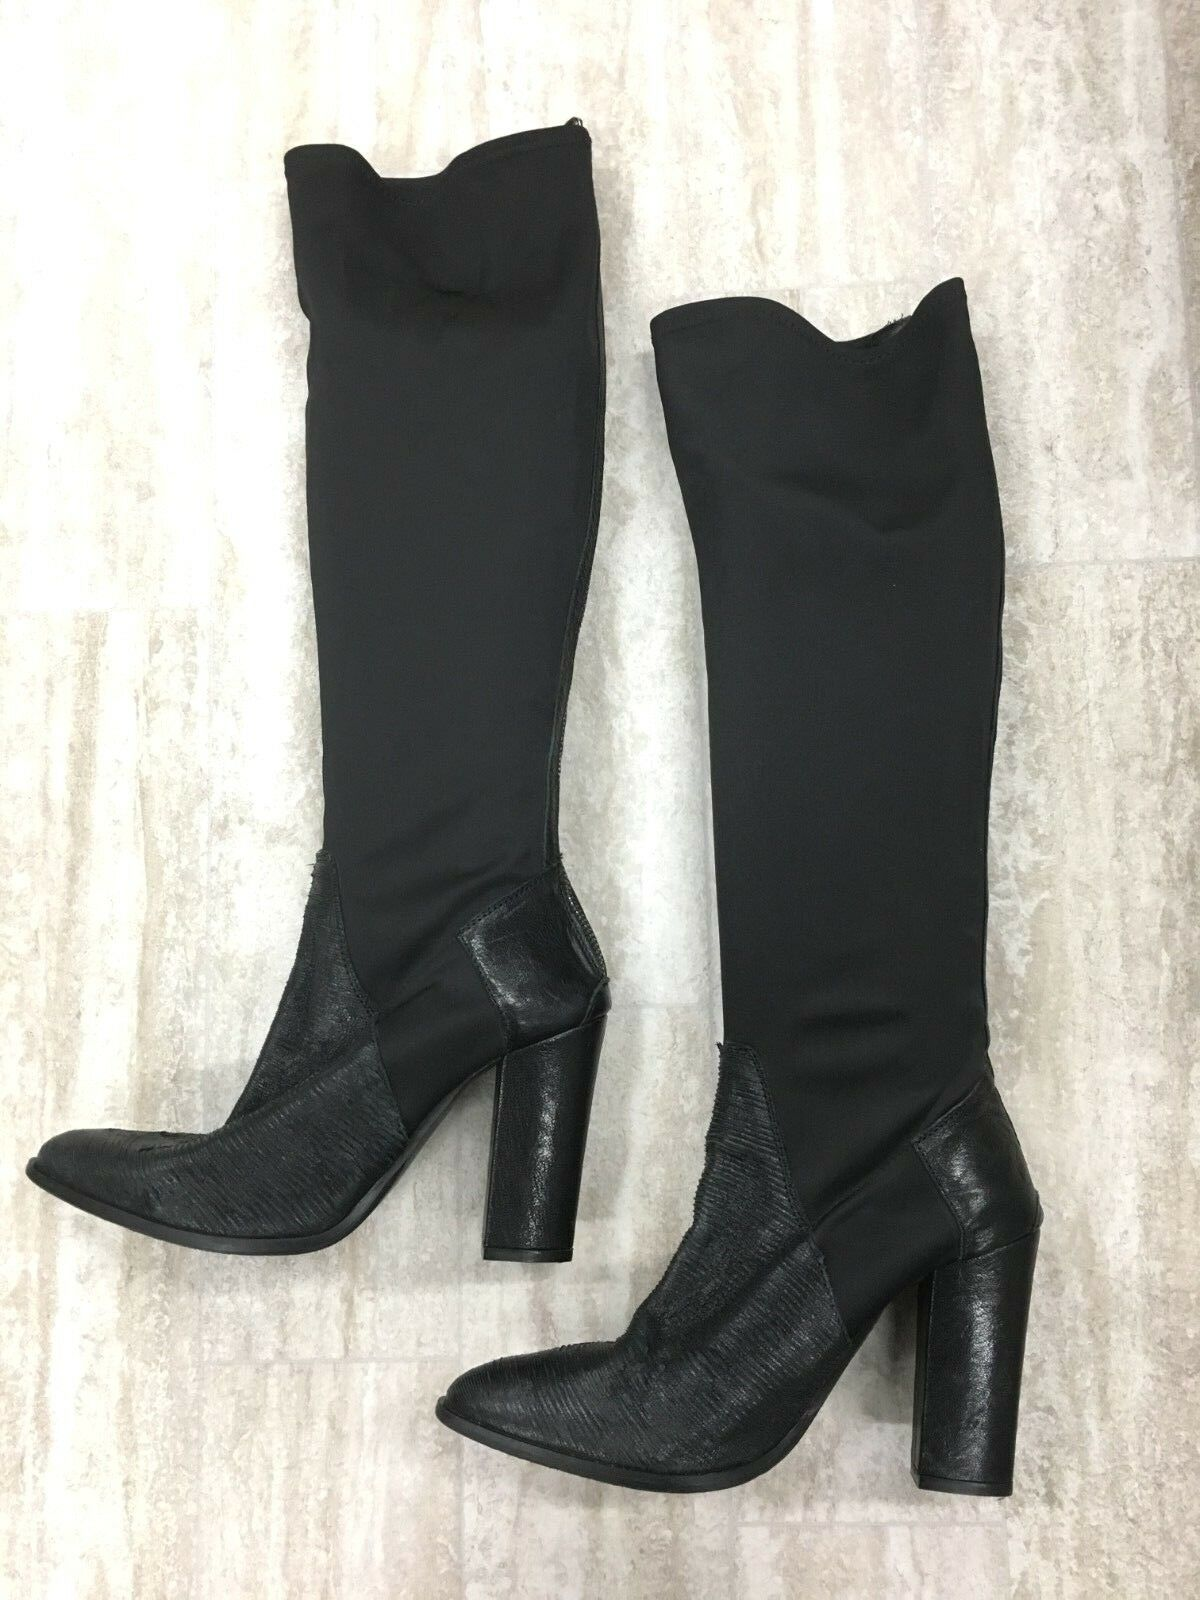 Charles by Charles David Knee High Black Leather Stretch Nylon Boots SZ 10.5